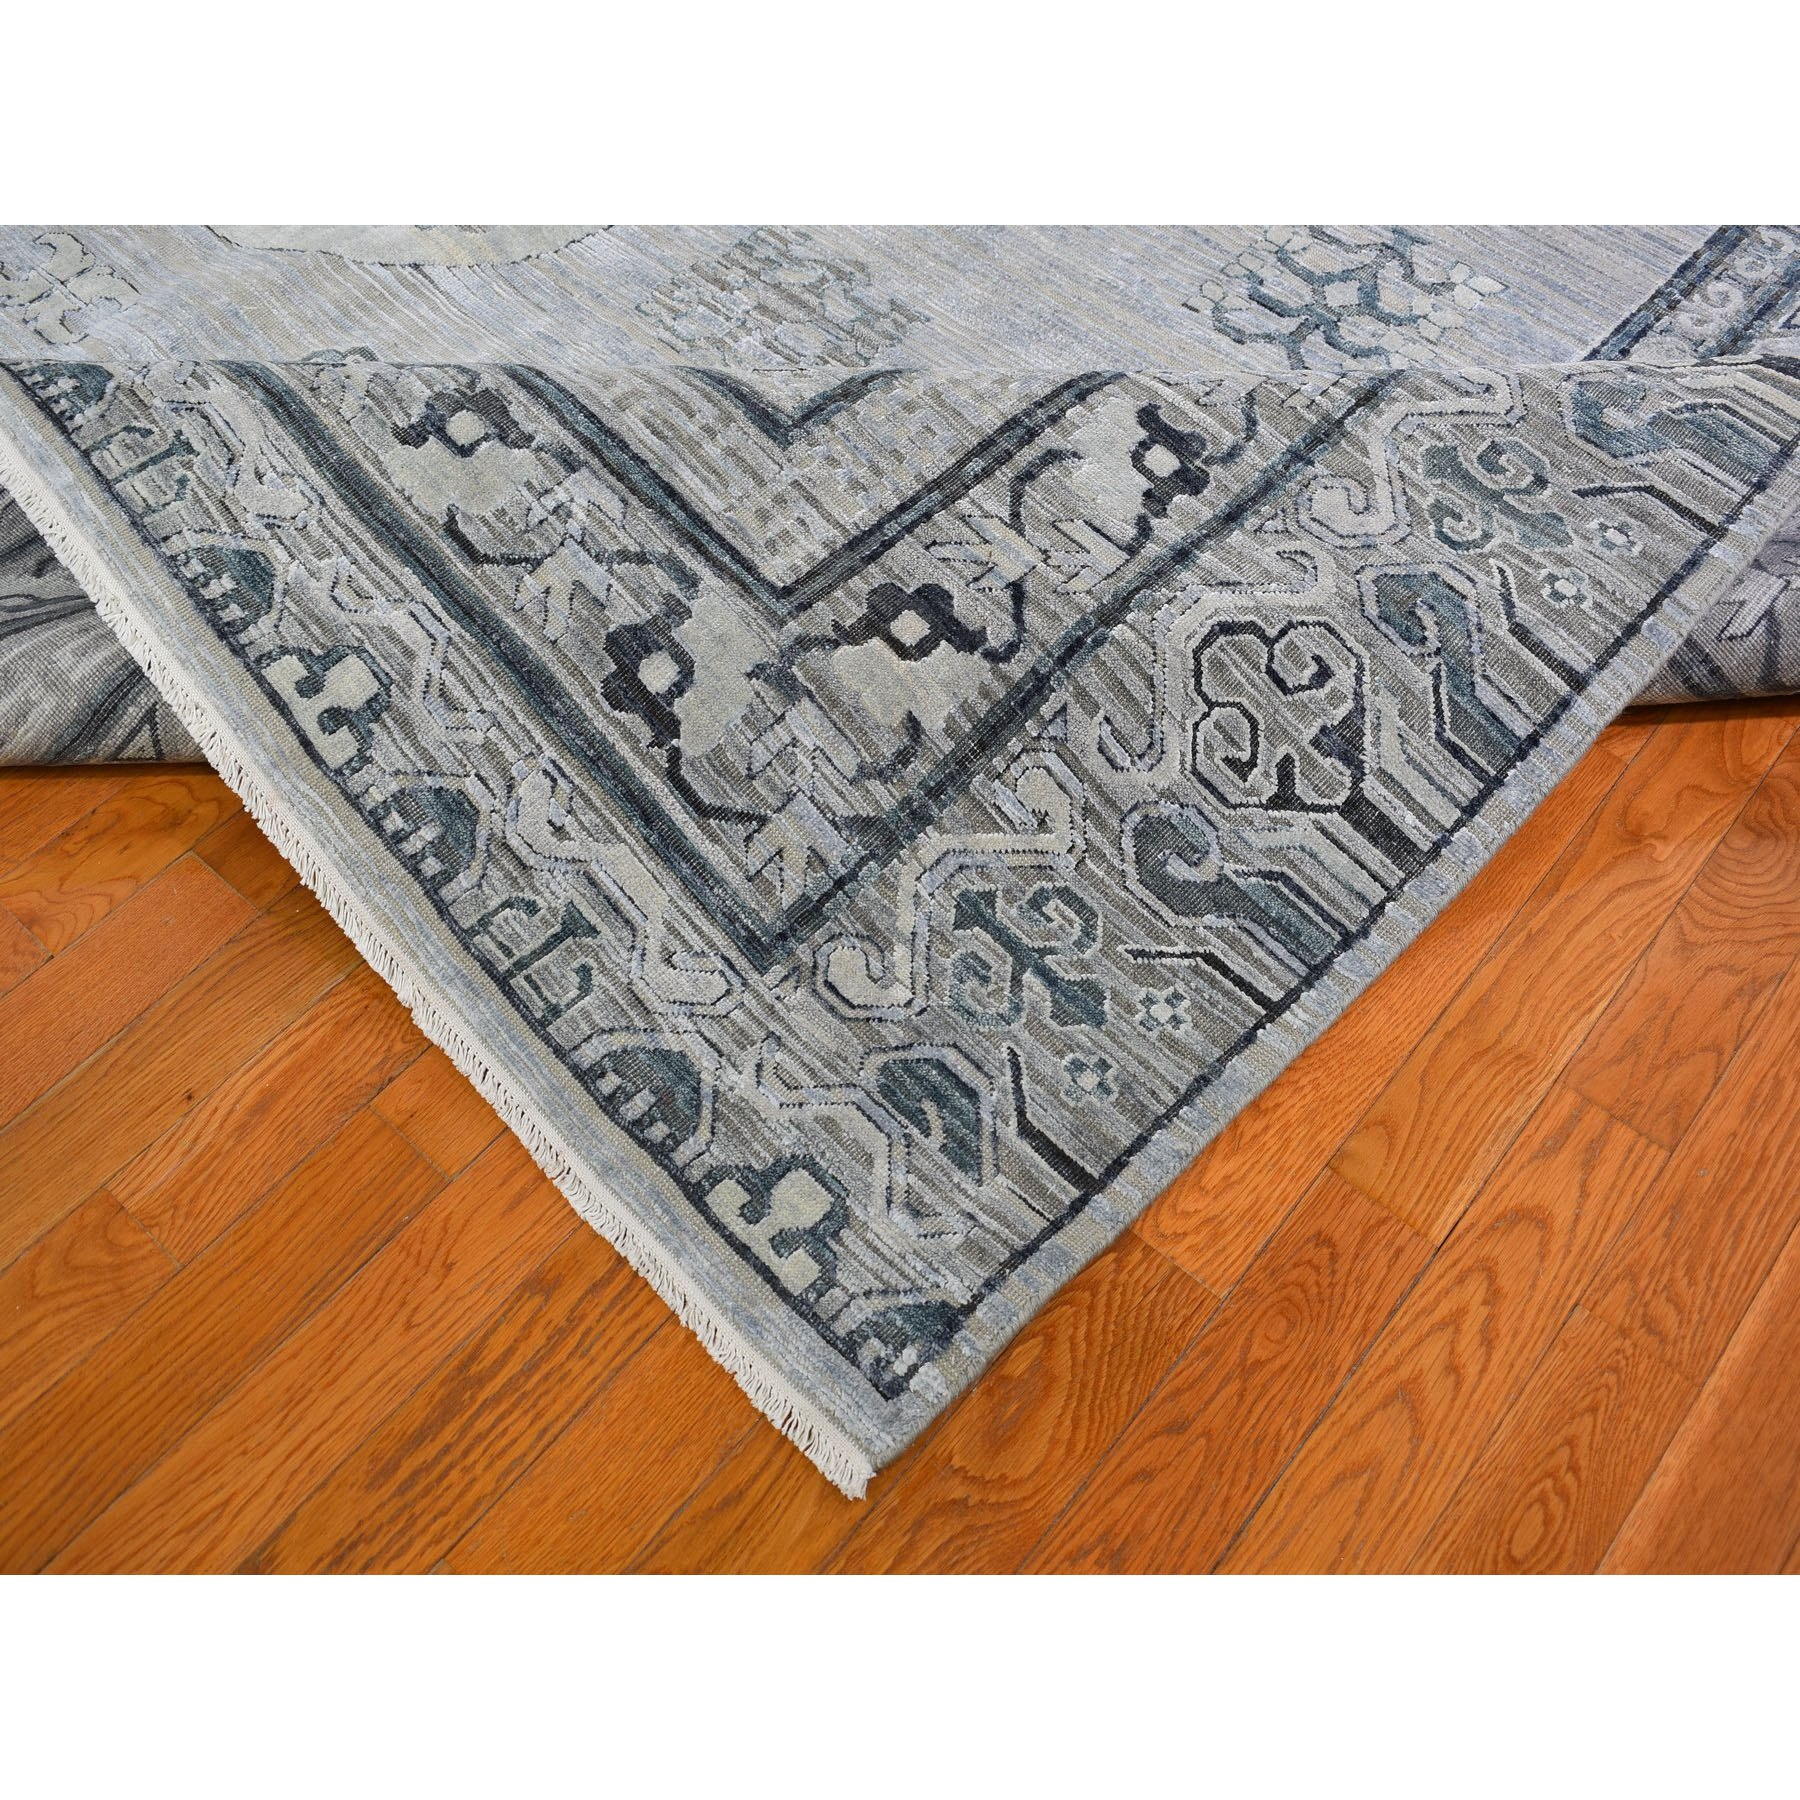 12-x15- Oversized Silver-Blue Khotan Design Pure Silk and Textured Wool Hand Knotted Oriental Rug